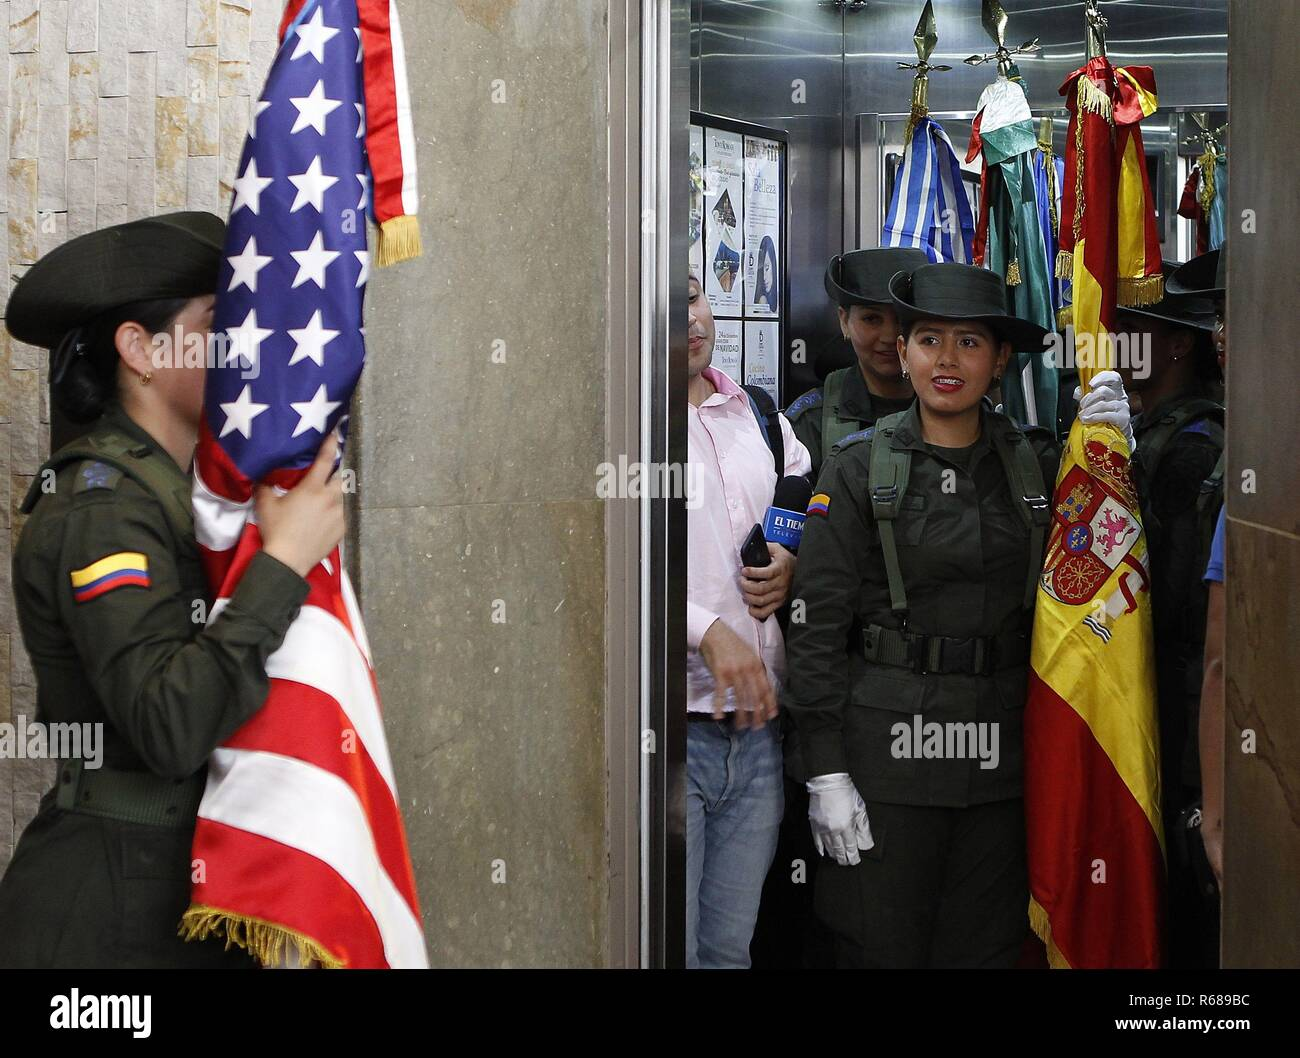 Medellin, Colombia. 04th Dec, 2018. Members of Colombia's Anti-Drugs Police attend the first International Anti-Narcotics Congress, in Medellin, Colombia, 04 December 2018. Credit: Luis Eduardo Noriega A./EFE/Alamy Live News - Stock Image